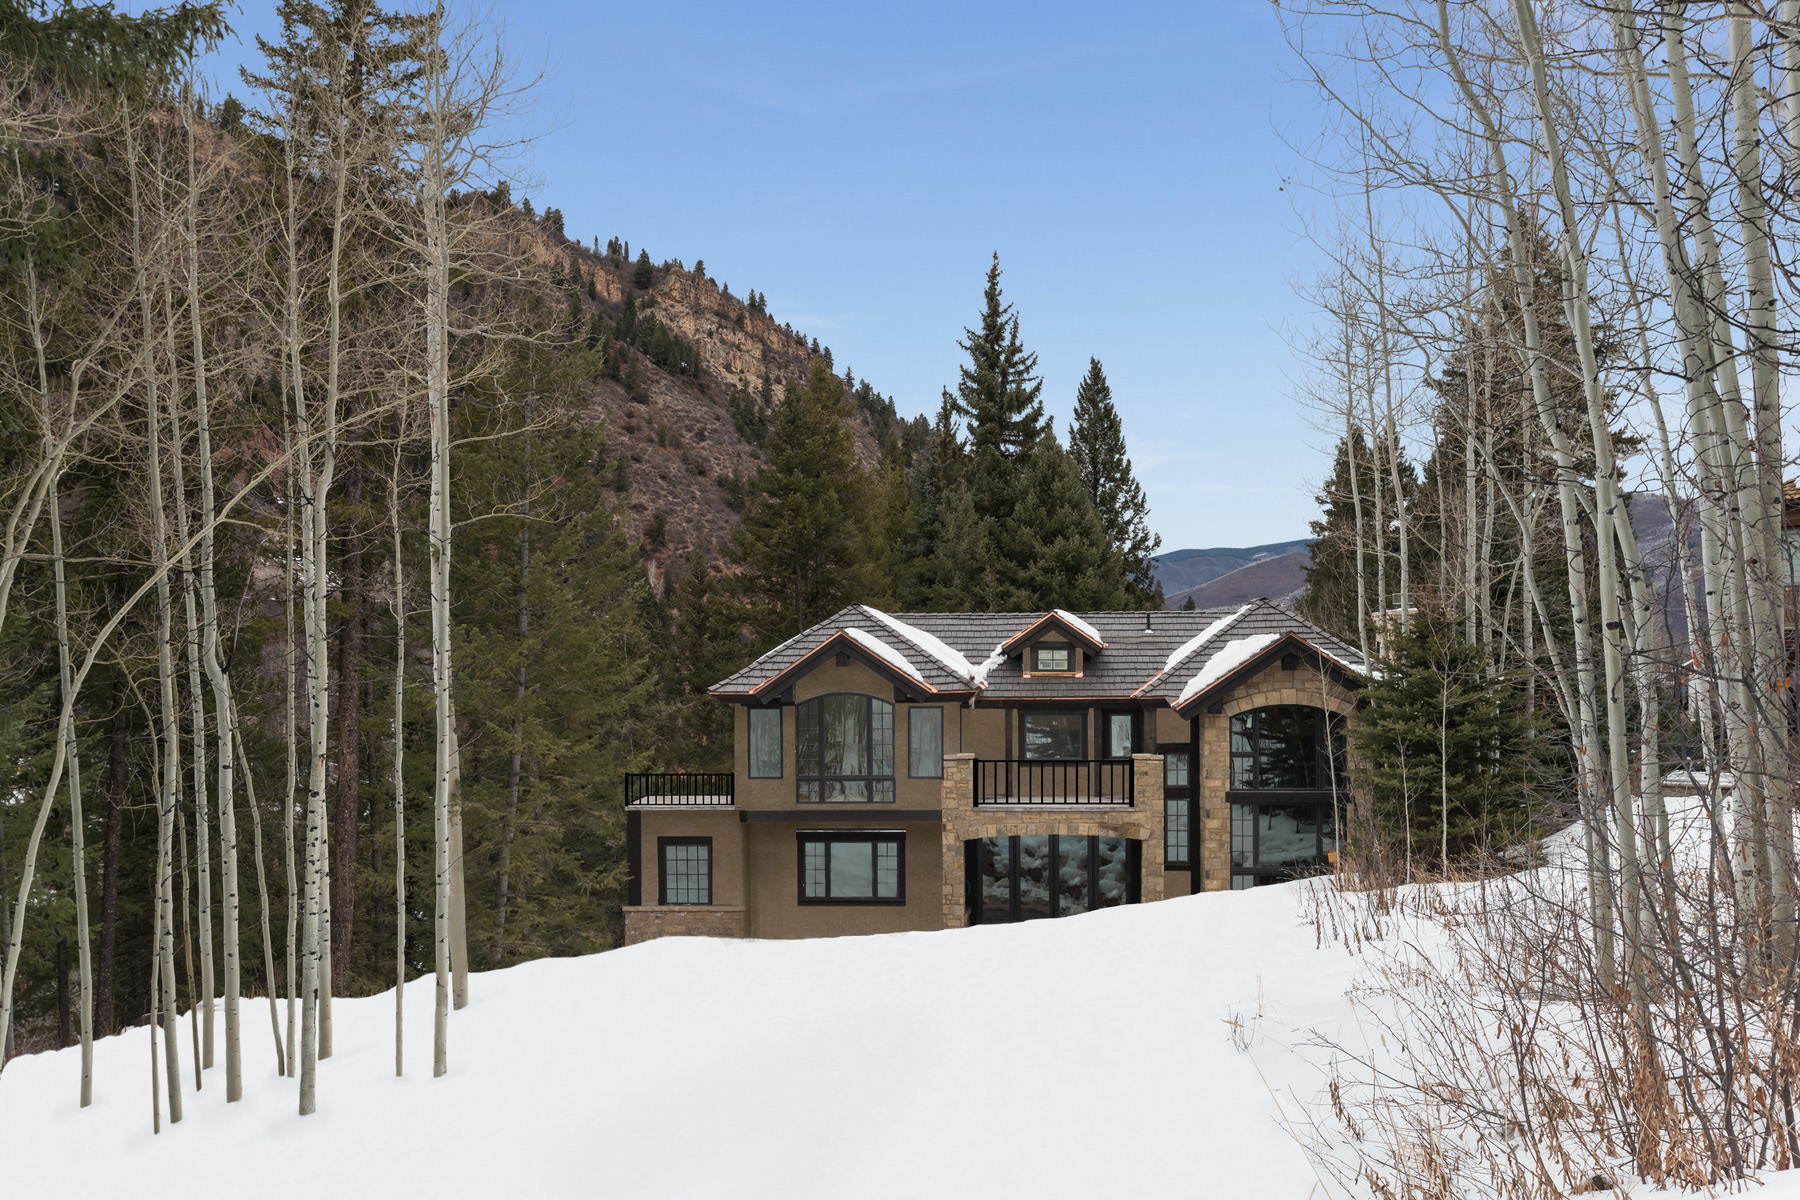 獨棟家庭住宅 為 出售 在 Brand New Mountain Modern Ski Home 235 Exhibition Lane Aspen, 科羅拉多州 81611 美國